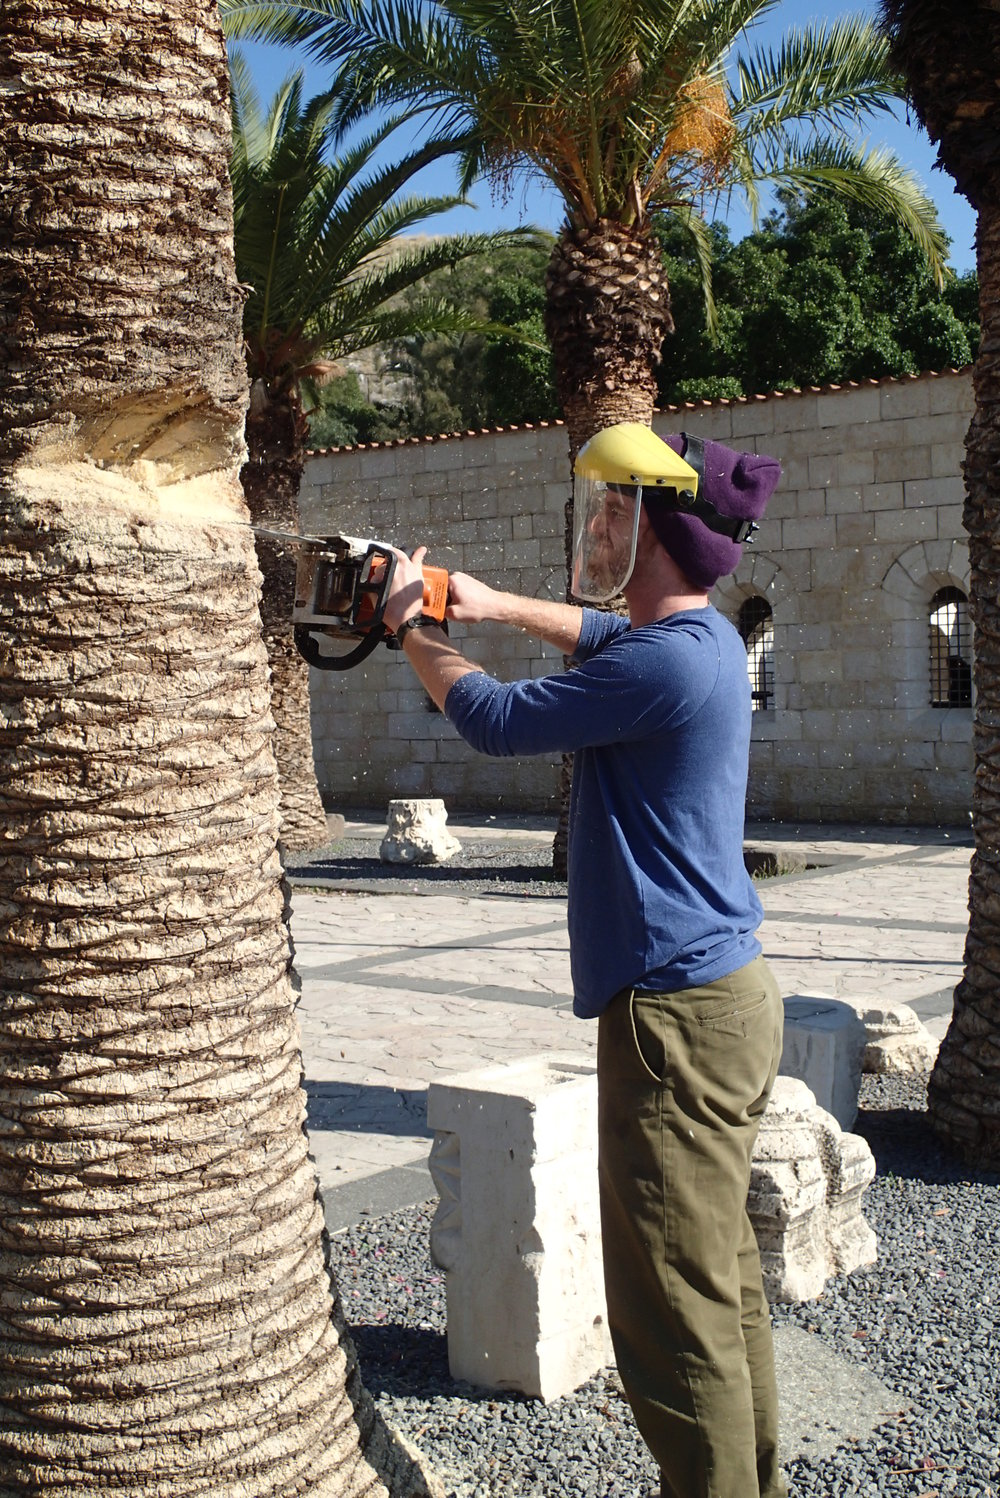 BVC Tabgha 2013 Derek Rausch cuts down palm tree.JPG